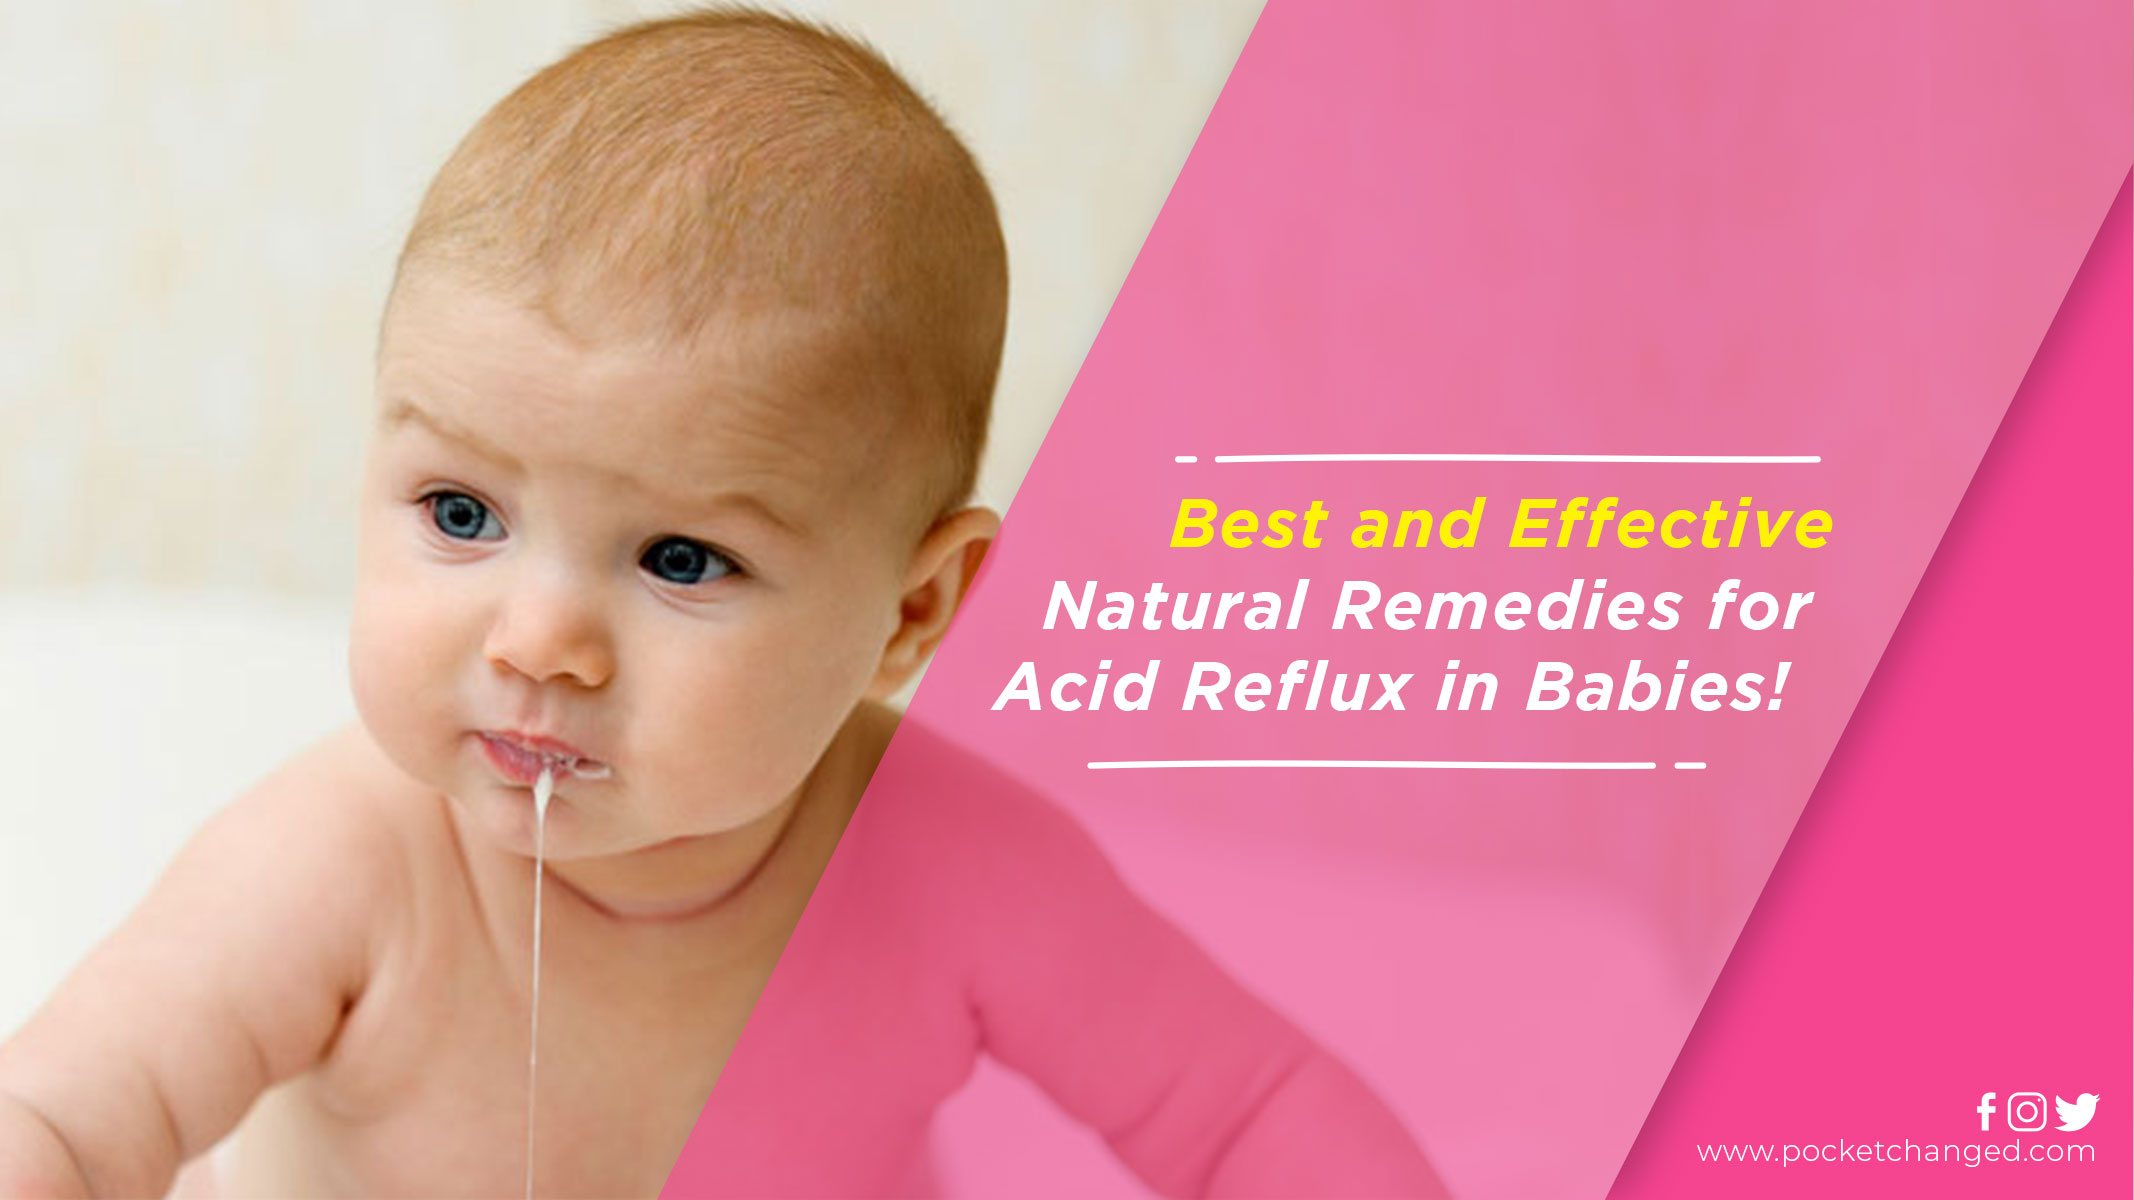 Best-and-Effective-Natural-Remedies-for-Acid-Reflux-in-Babies!